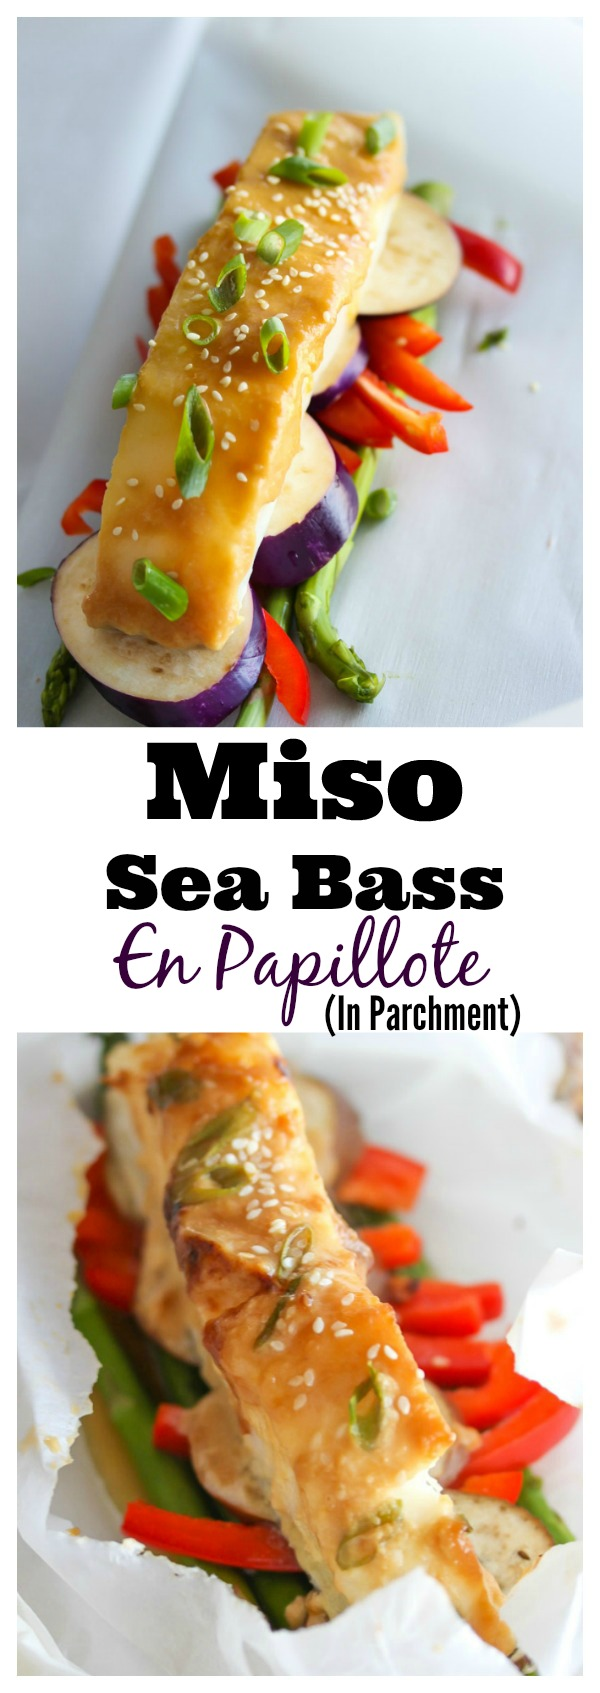 Baked in parchment paper, miso-marinated sea bass and vegetables retain moisture while capturing the essence of Asian-inspired flavors. An easy, healthy weeknight meal. | dishingouthealth.com